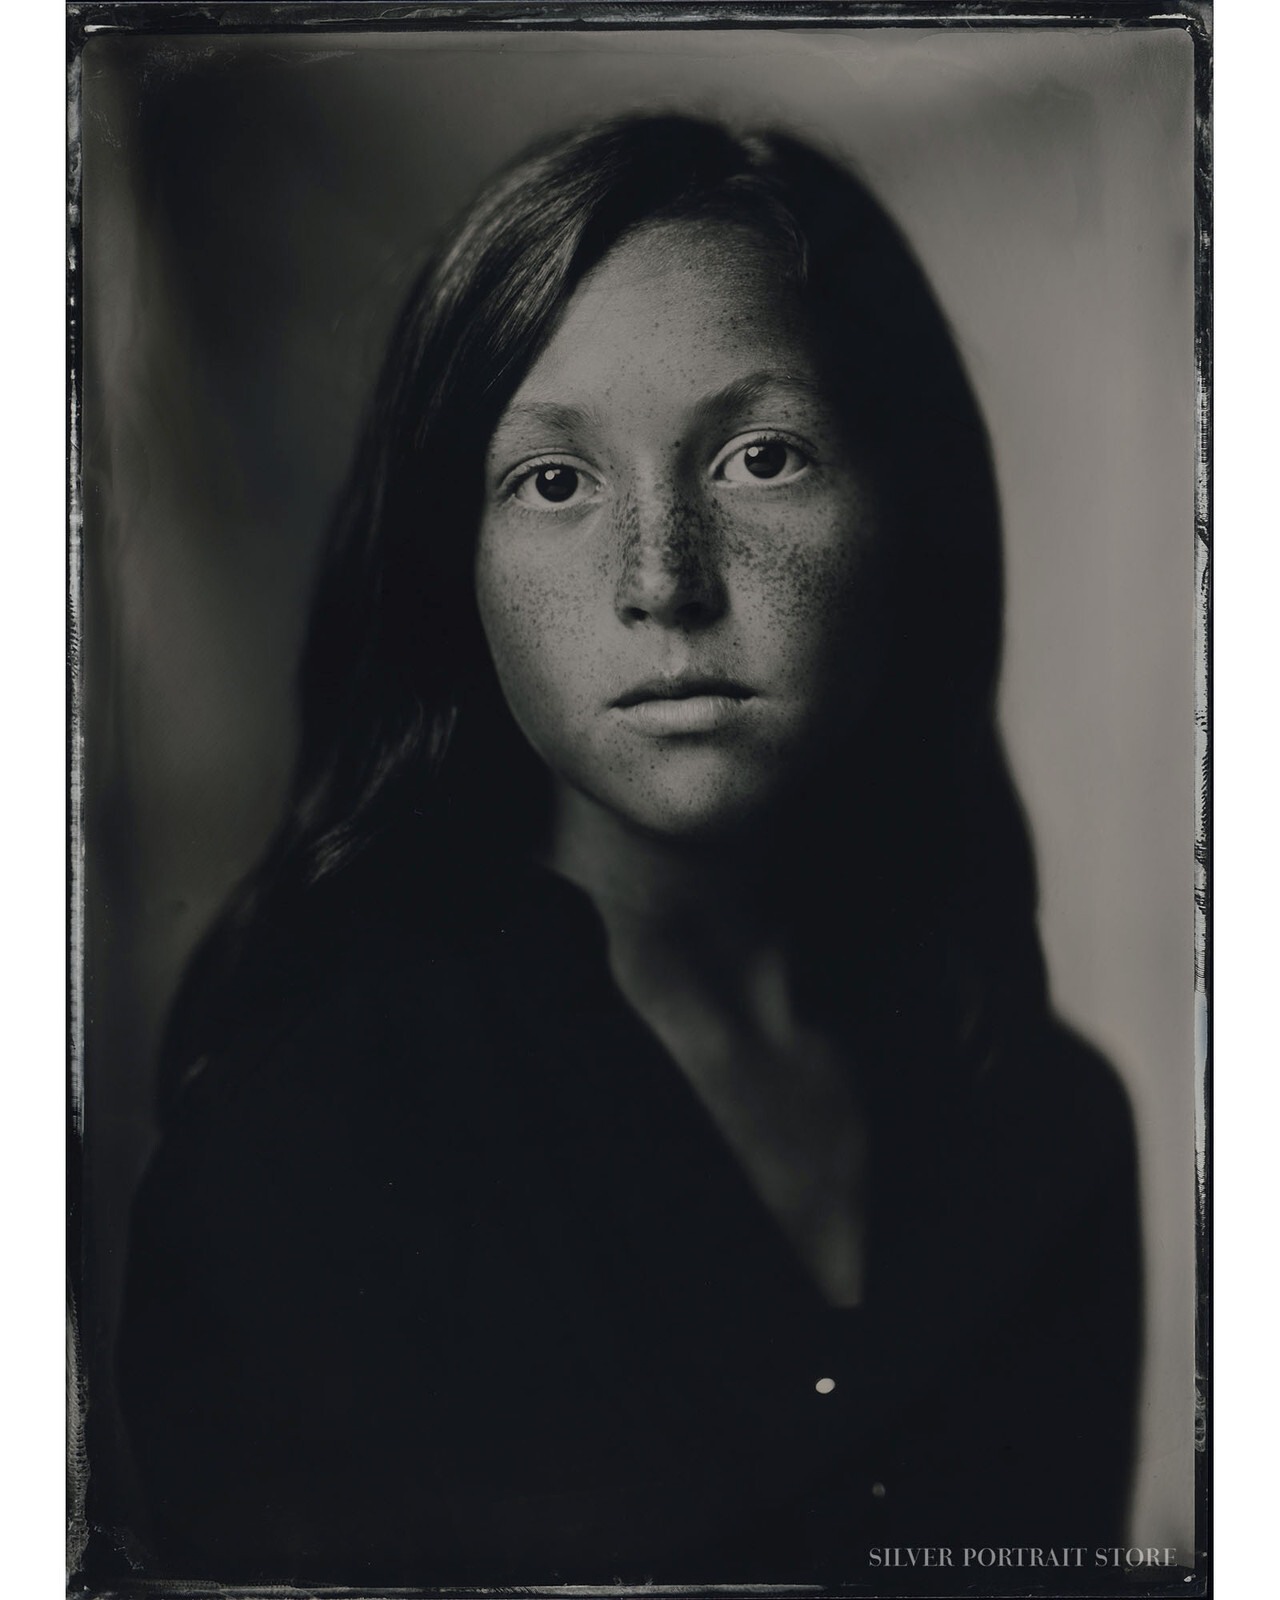 Eline-Silver Portrait Store-scan from Wet plate collodion-Tintype 13 x 18 cm.